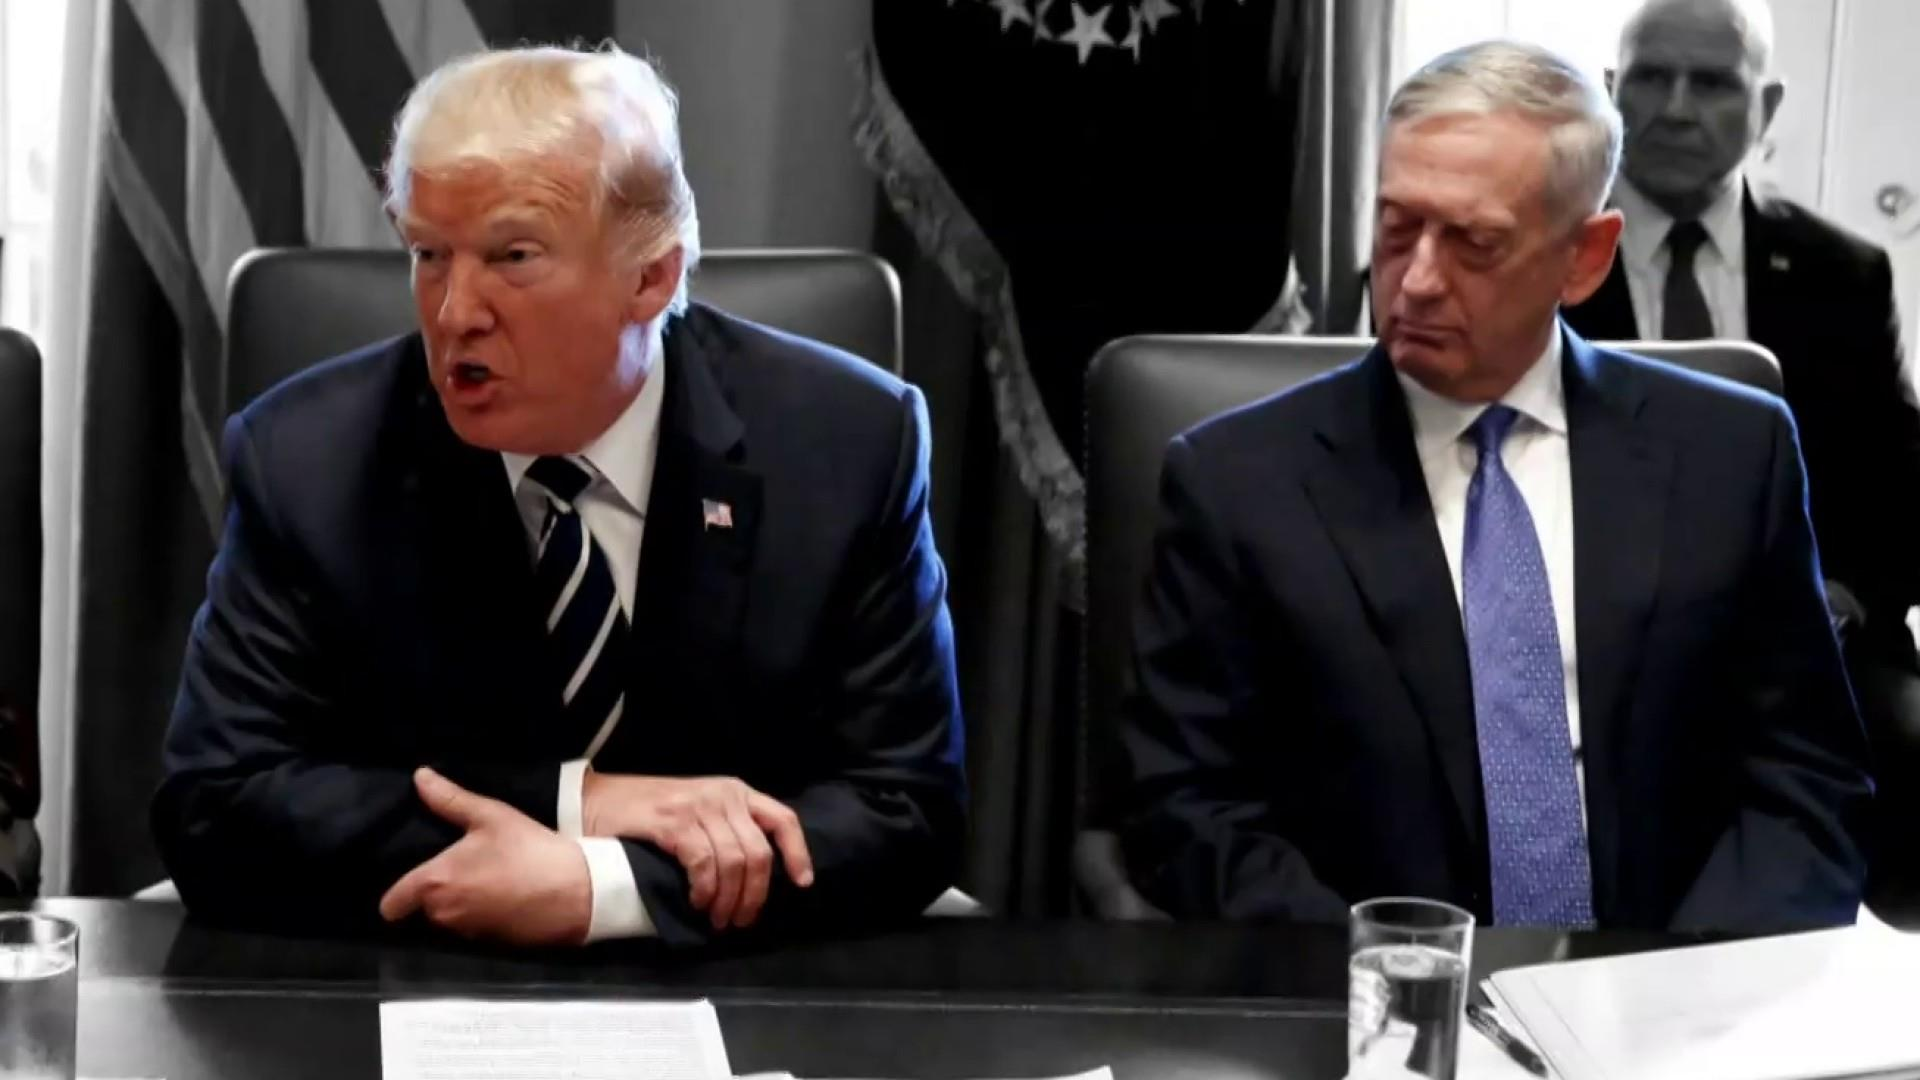 Trump reportedly called generals 'dopes and babies' while berating them